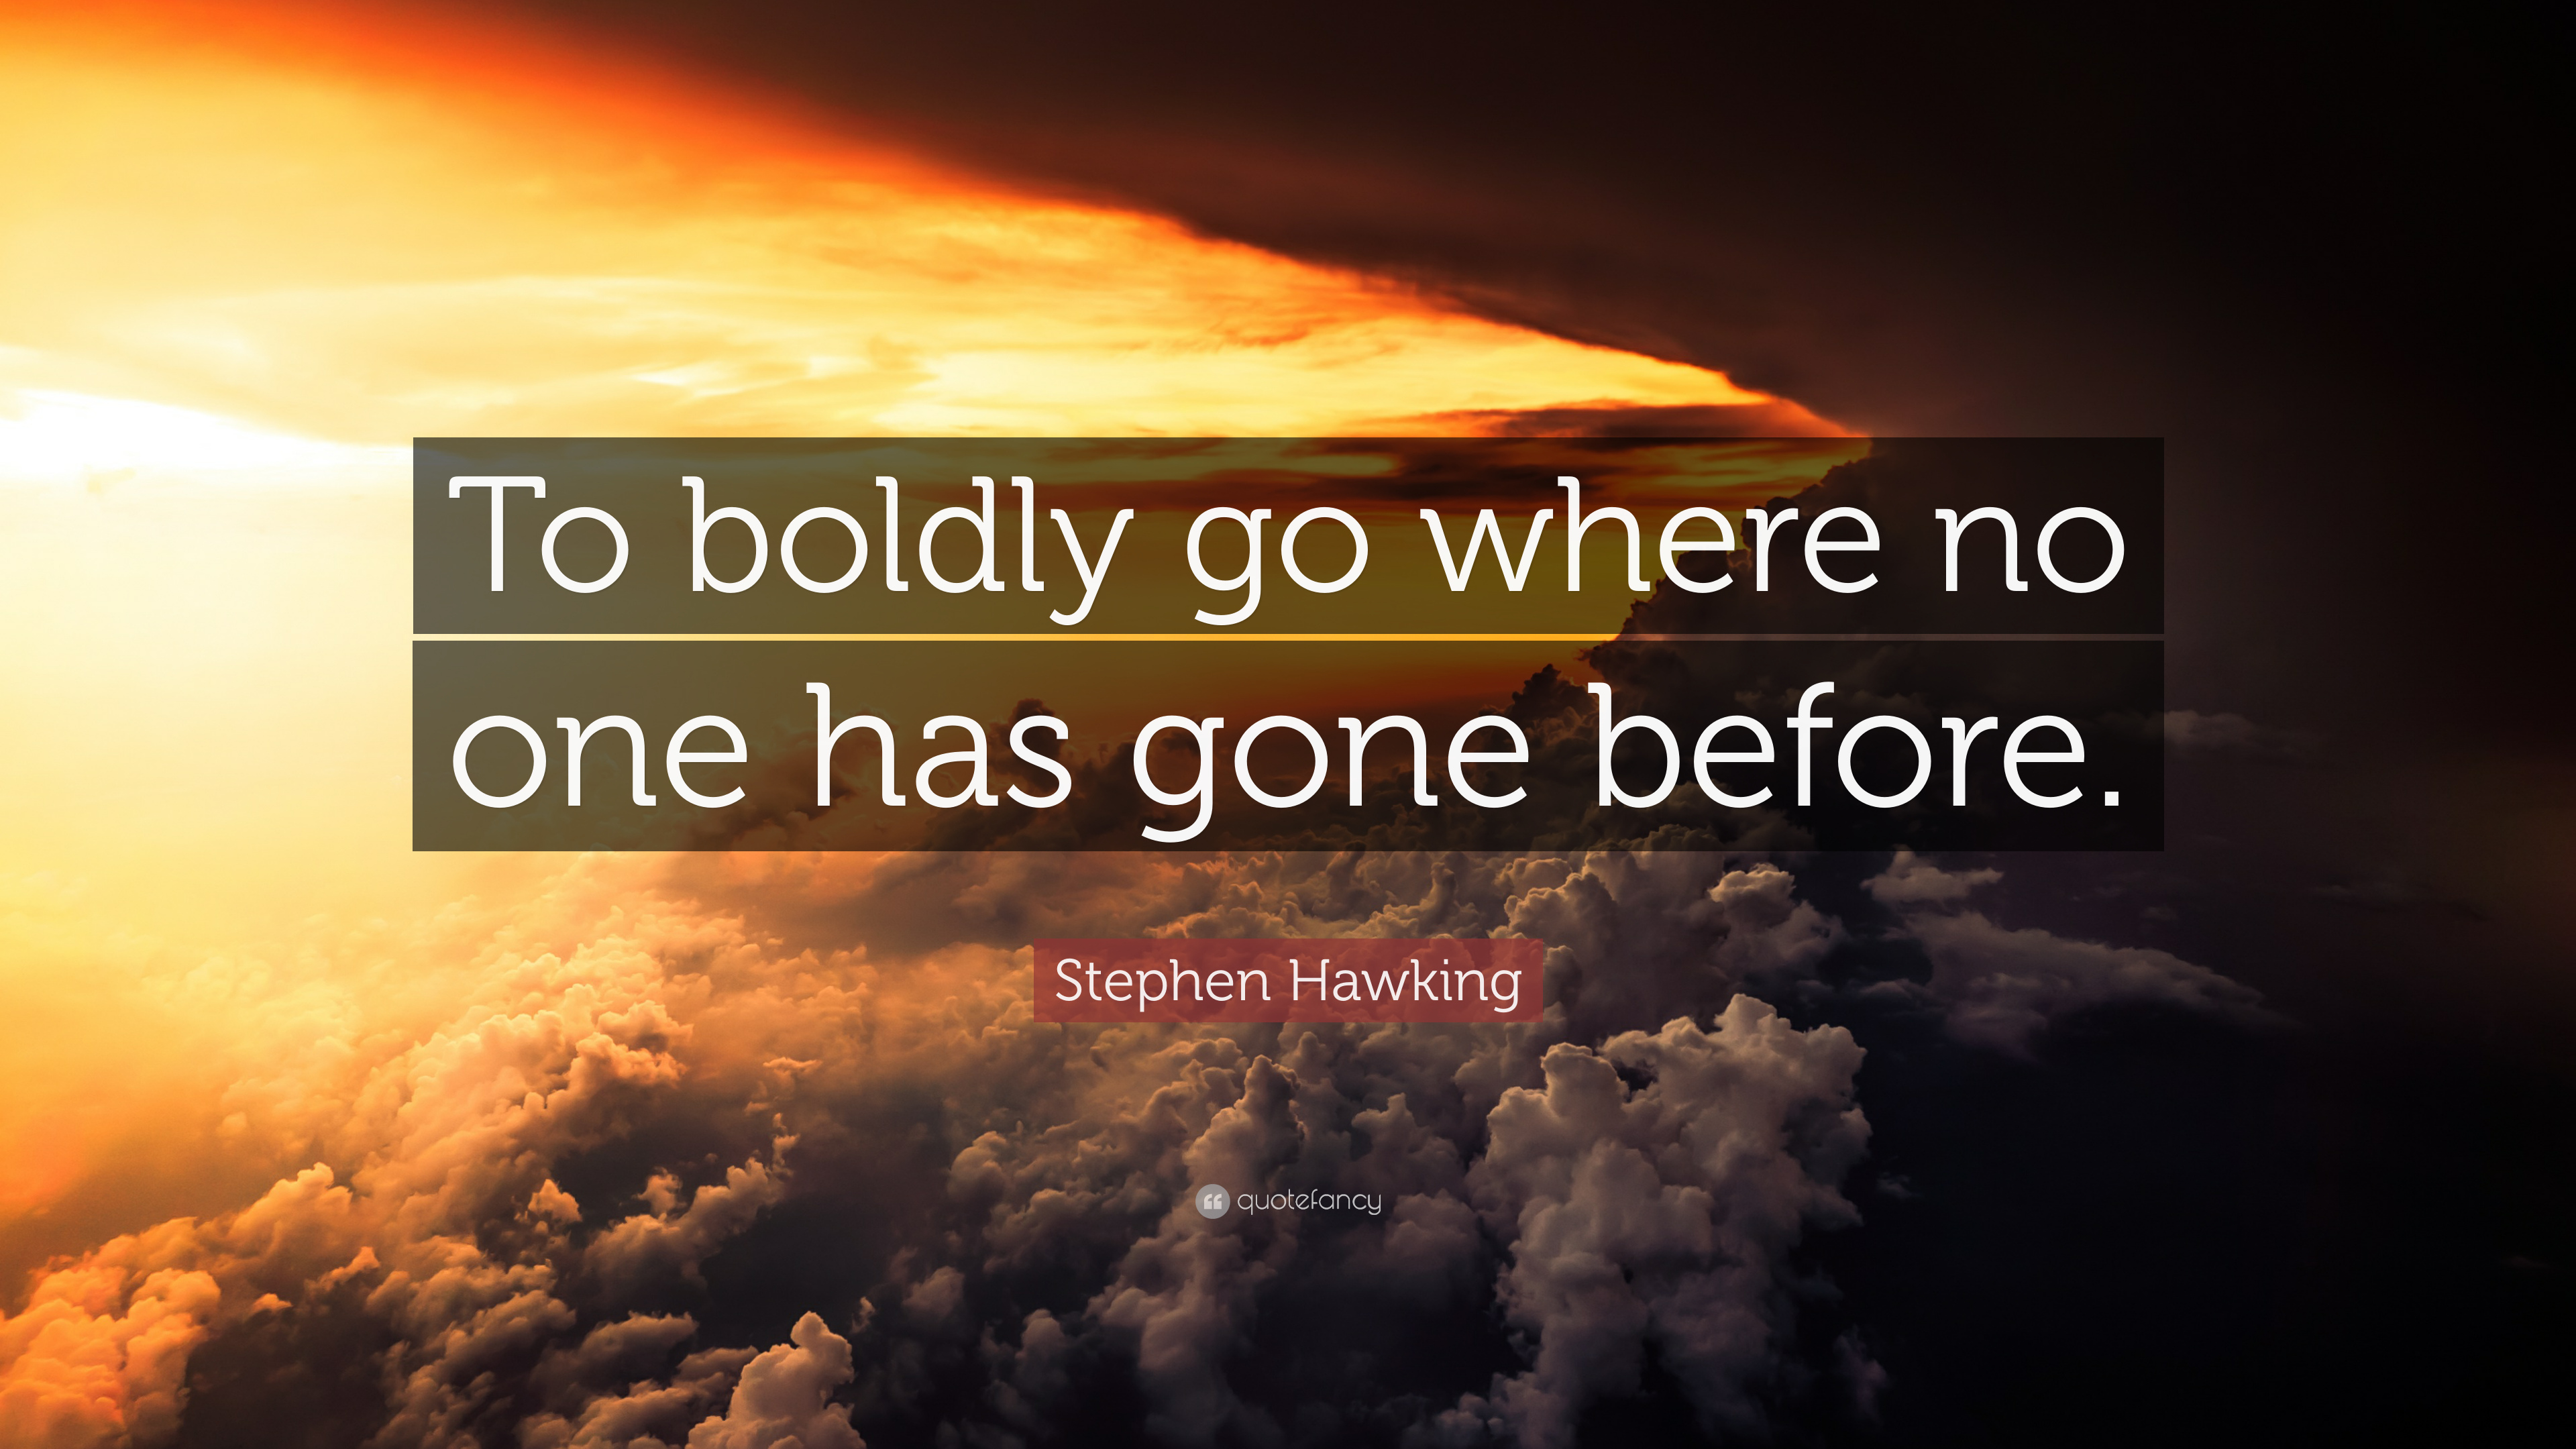 Stephen Hawking Quote To Boldly Go Where No One Has Gone